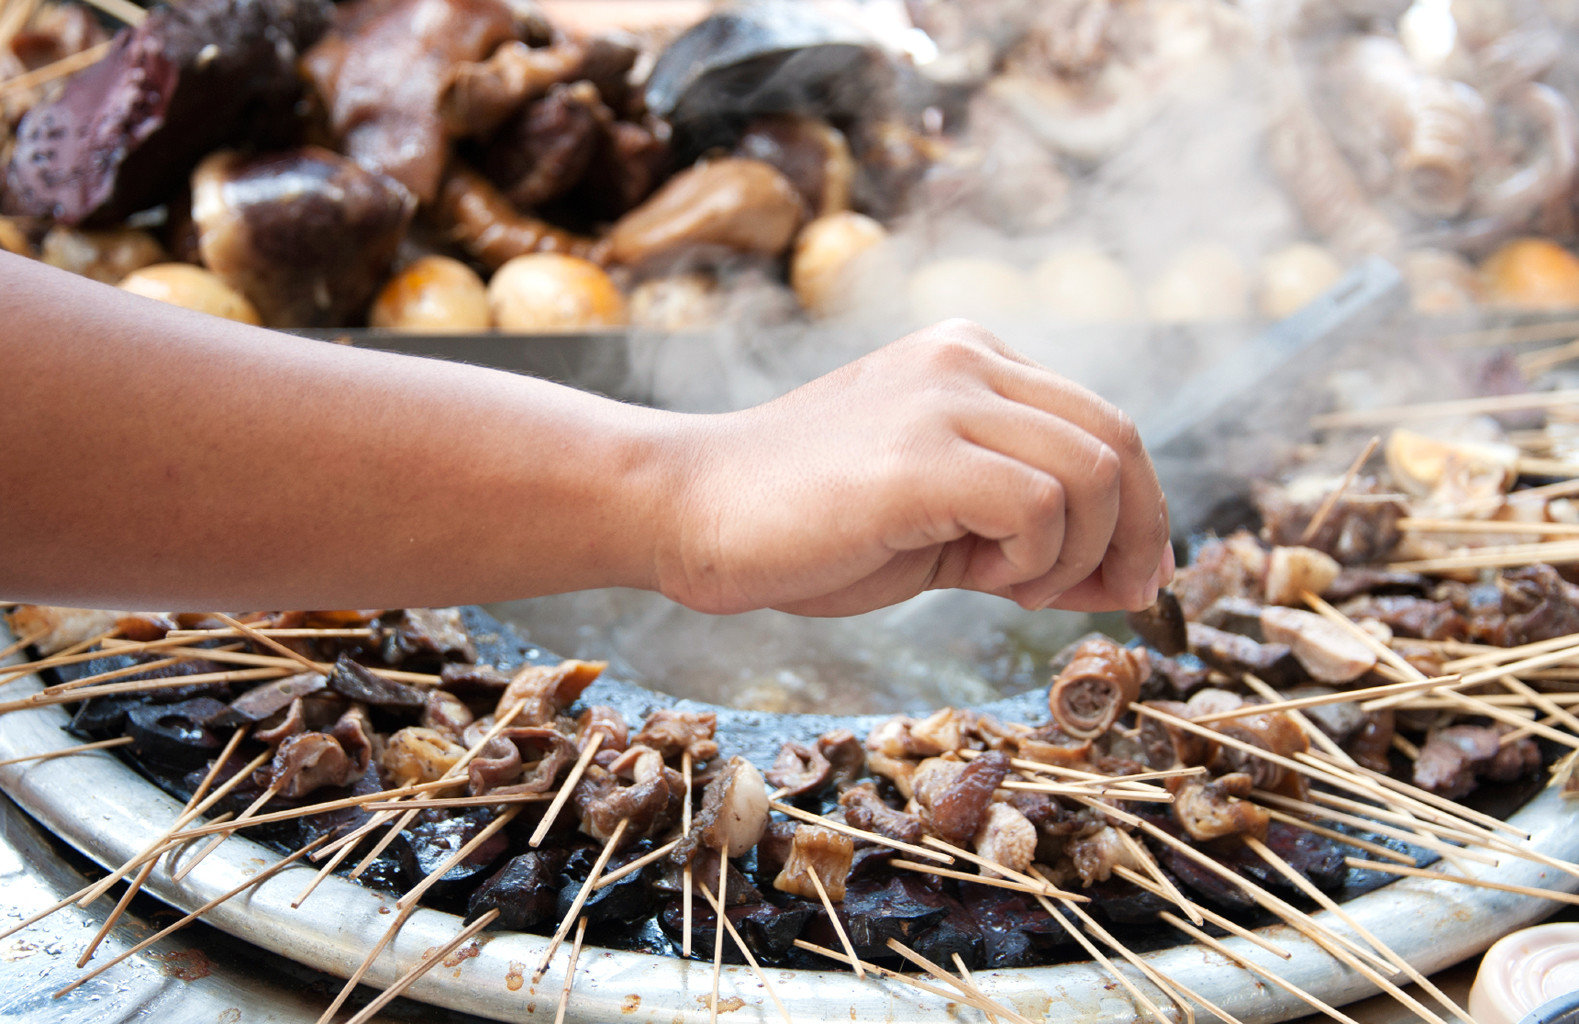 food Seafood coconut cooking grill sense baking flavor cuisine preparing meat baked cooked pan vegetable barbecue